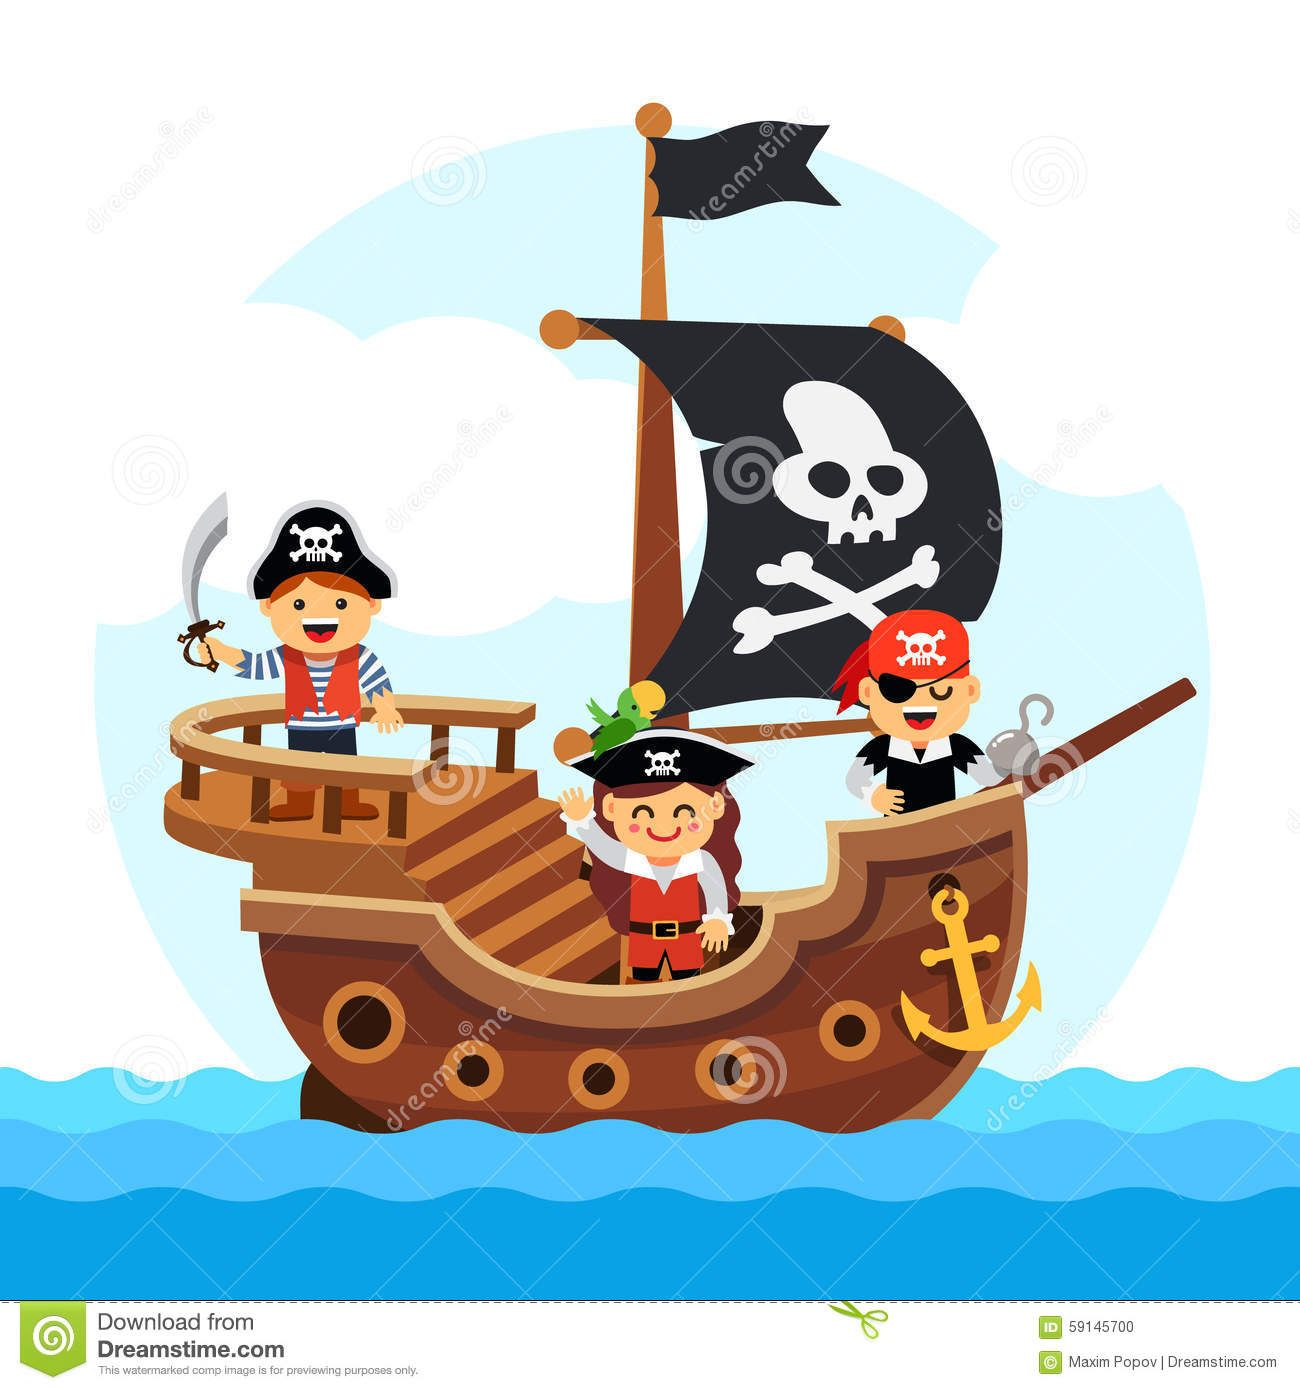 image result for pirate ship cartoon uiux2 pinterest